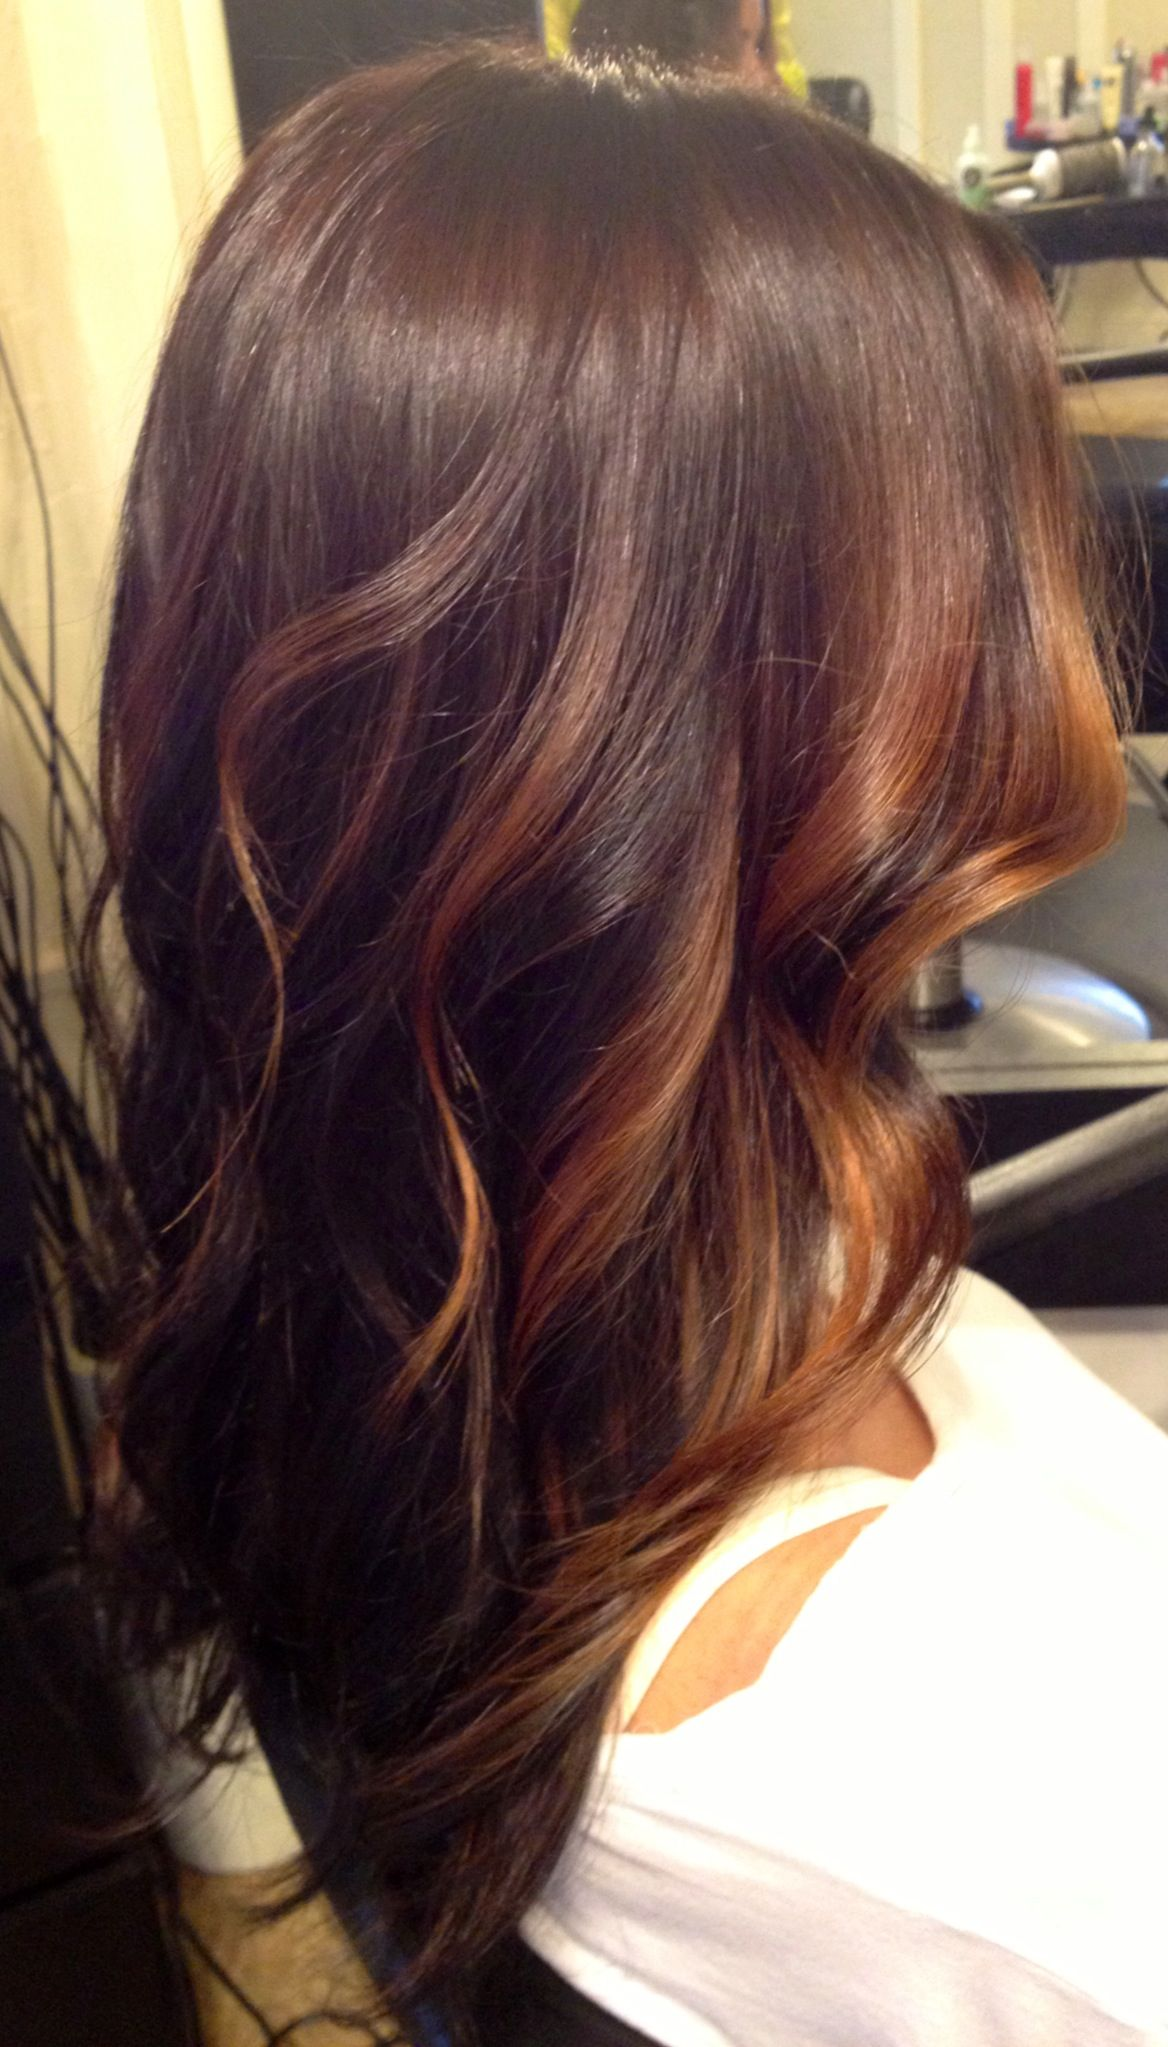 Brunette and Caramel face framing Balayage highlights over long